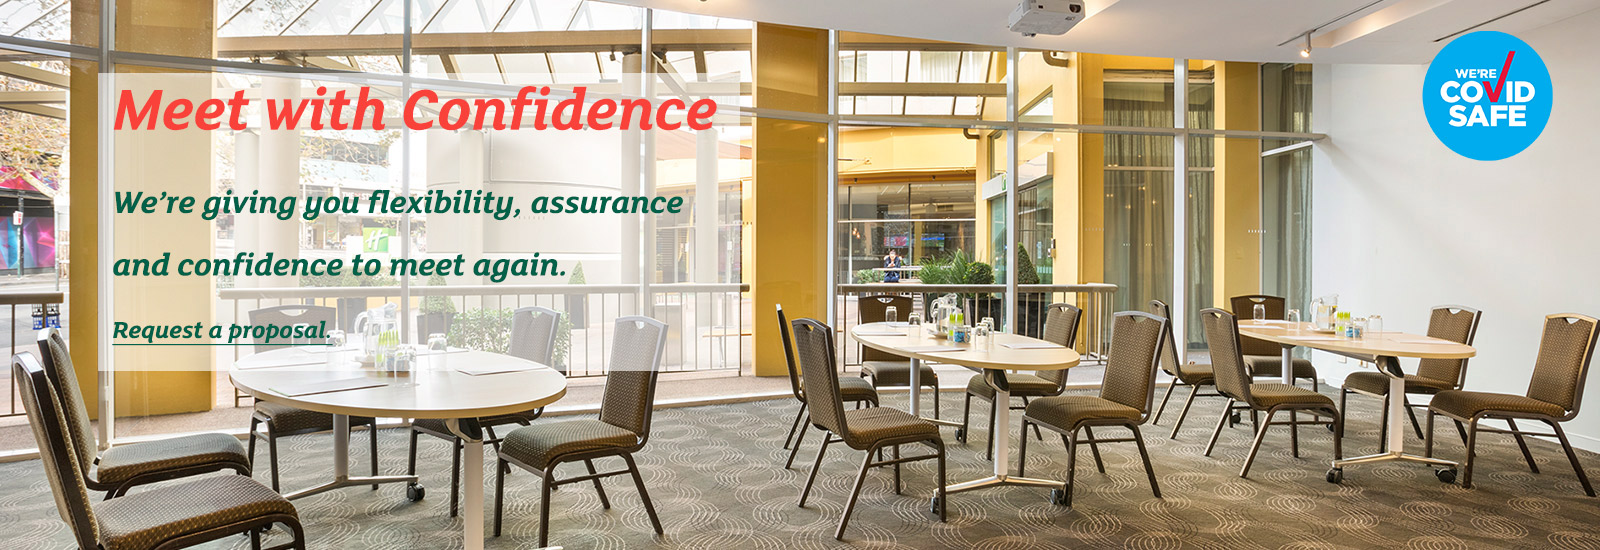 Meet with Confidence at Holiday Inn Potts Point | IHG® Hotels & Resorts